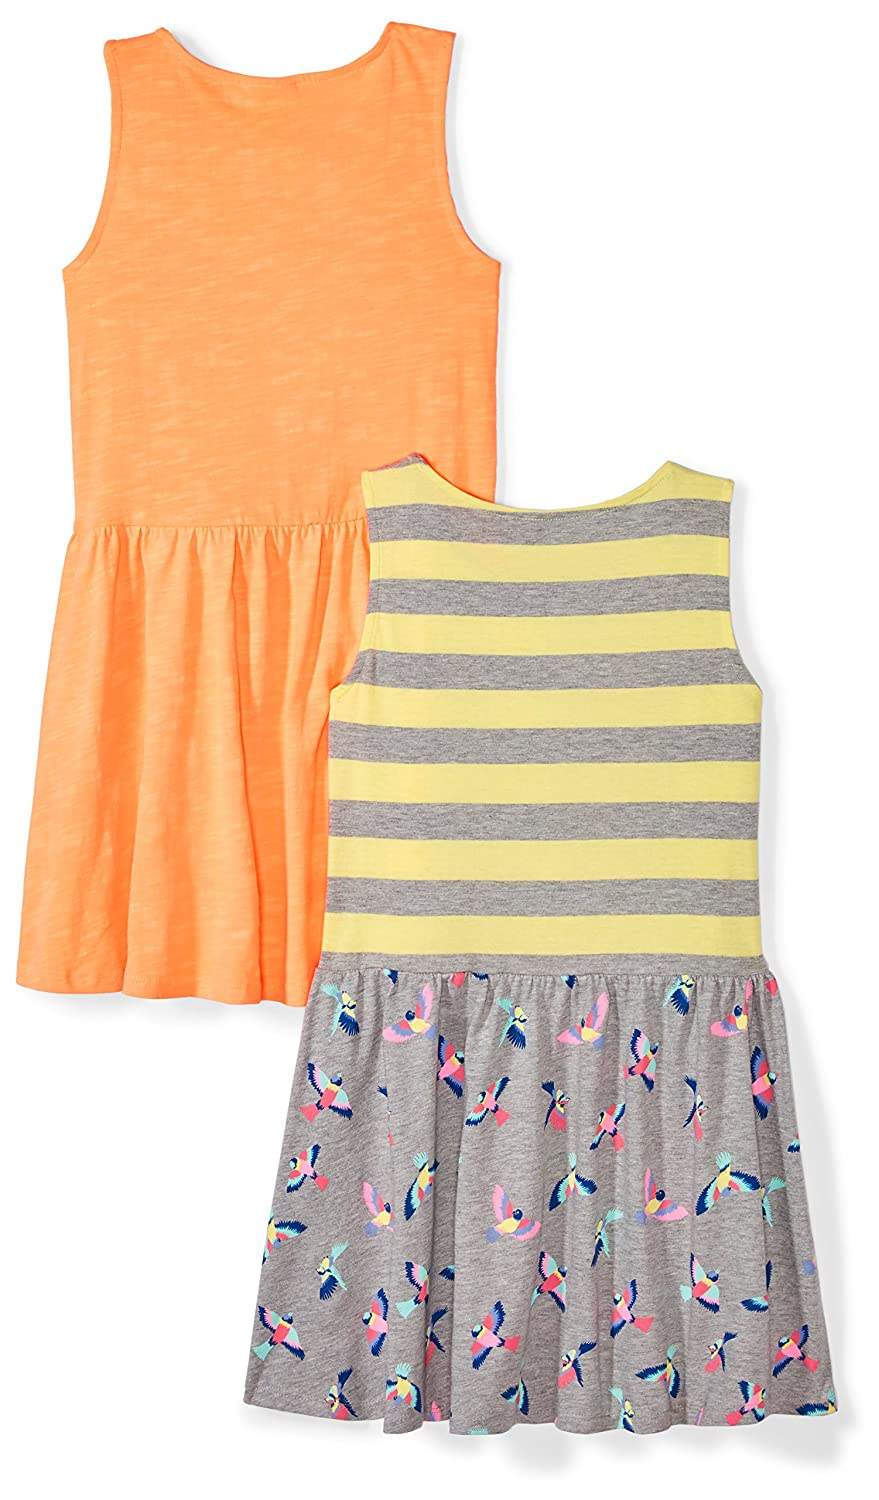 53b7ee44f Amazon.com  Amazon Brand - Spotted Zebra Girls  Toddler   Kid 2-Pack Knit  Sleeveless Fit and Flare Dresses  Clothing